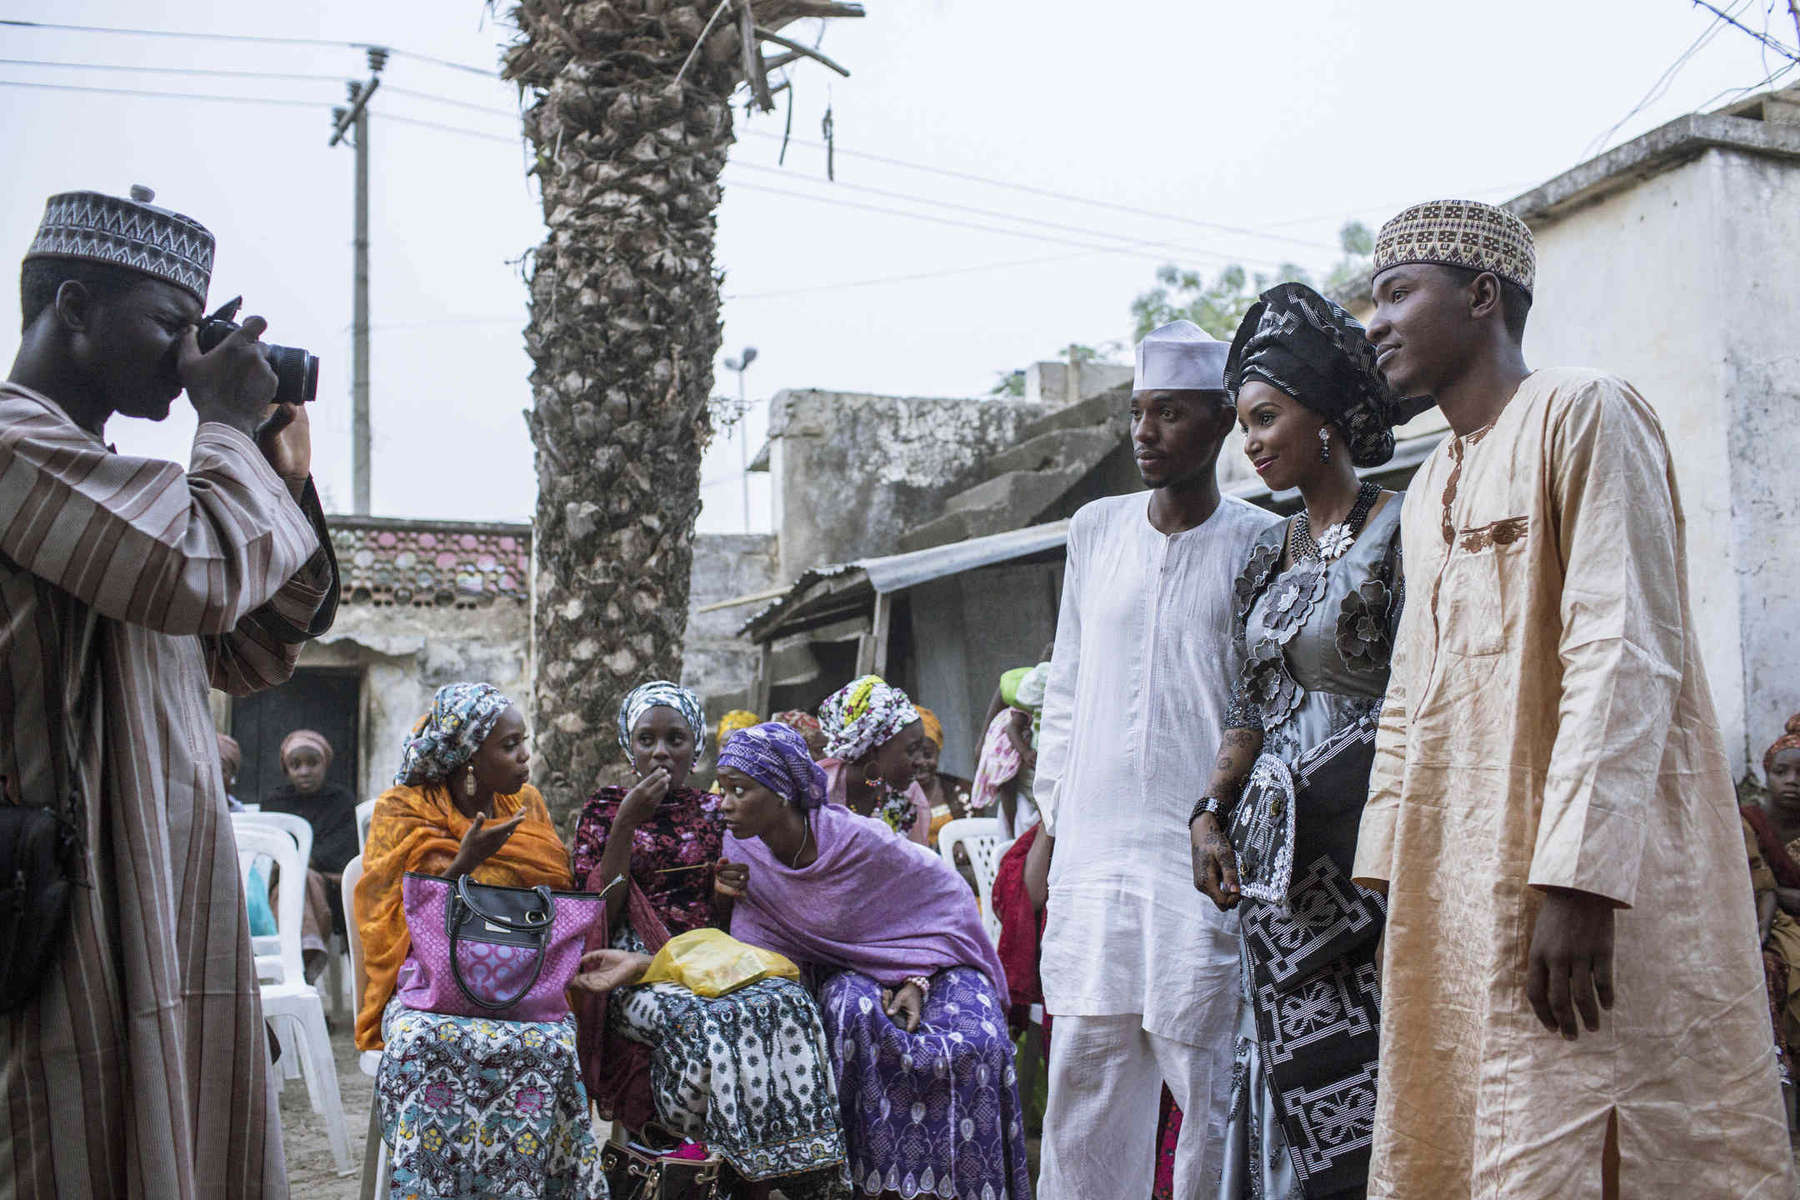 A wedding photographer snaps a northern bride with her husband and brother at a ceremony in Kano, Nigeria.